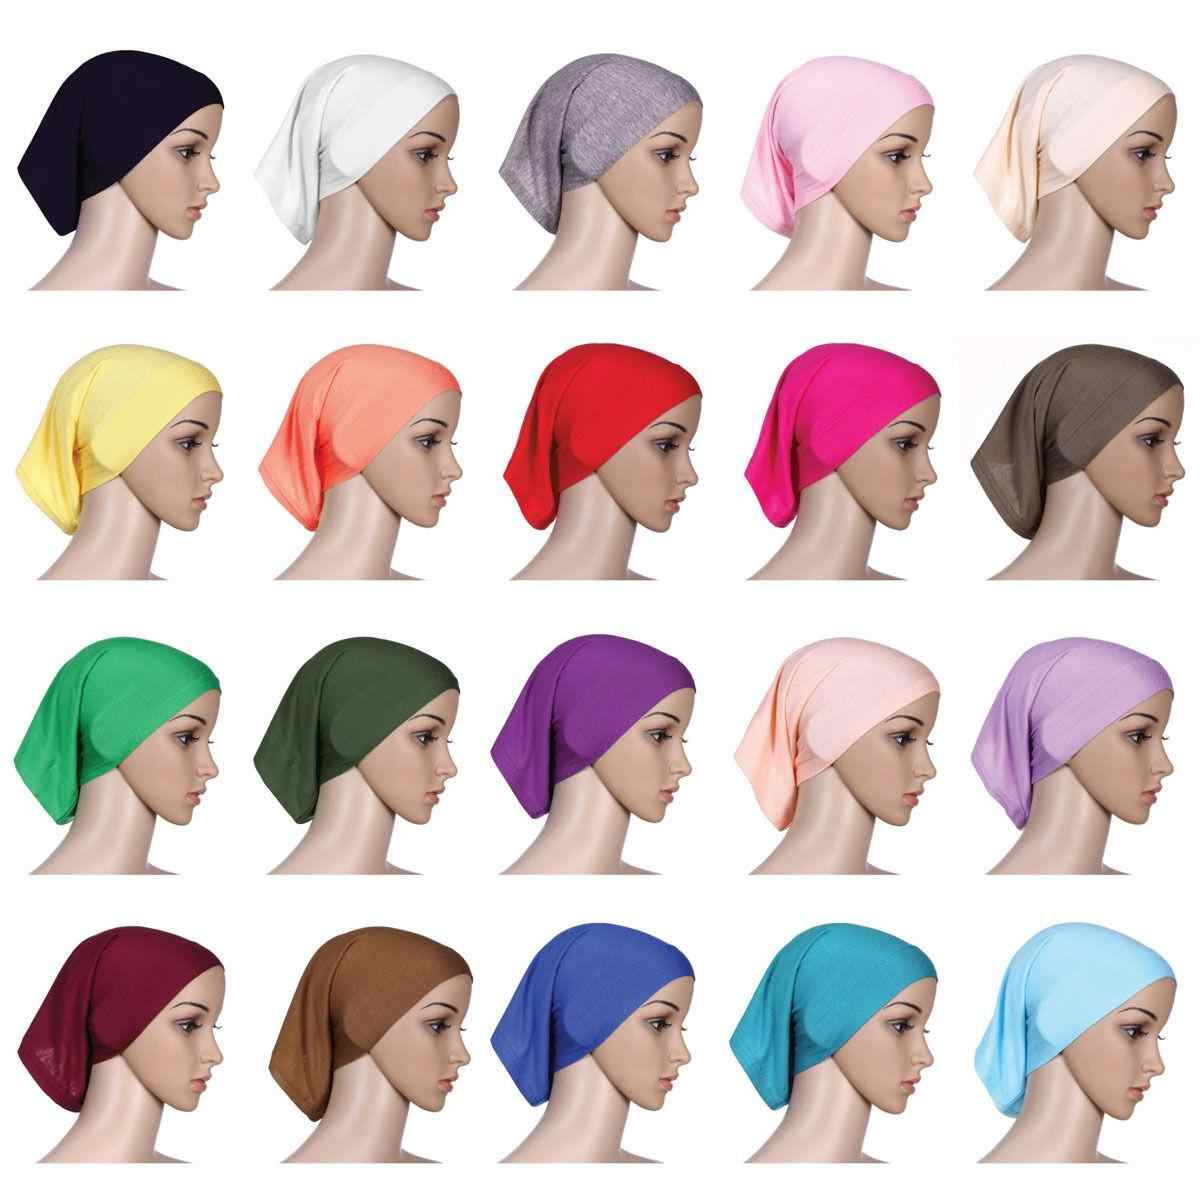 Muslim Women Head Scarf Cotton Underscarf Stretch Hijab Cover Headwrap Underscarf Cap Shawl Islam Scarf Inner Headband Bonnet